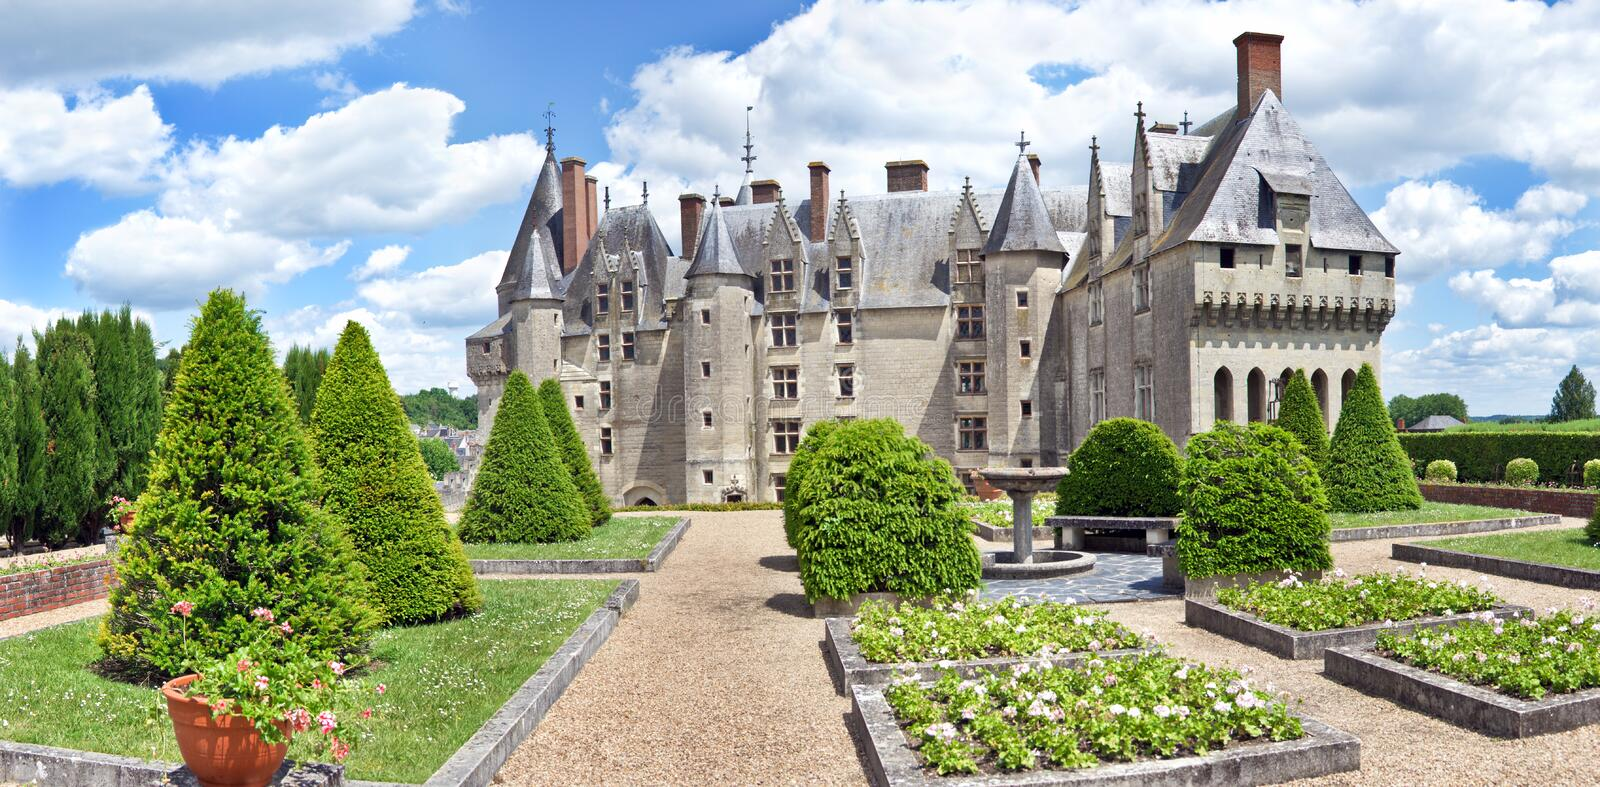 Chateau Langeais Garden royalty free stock images